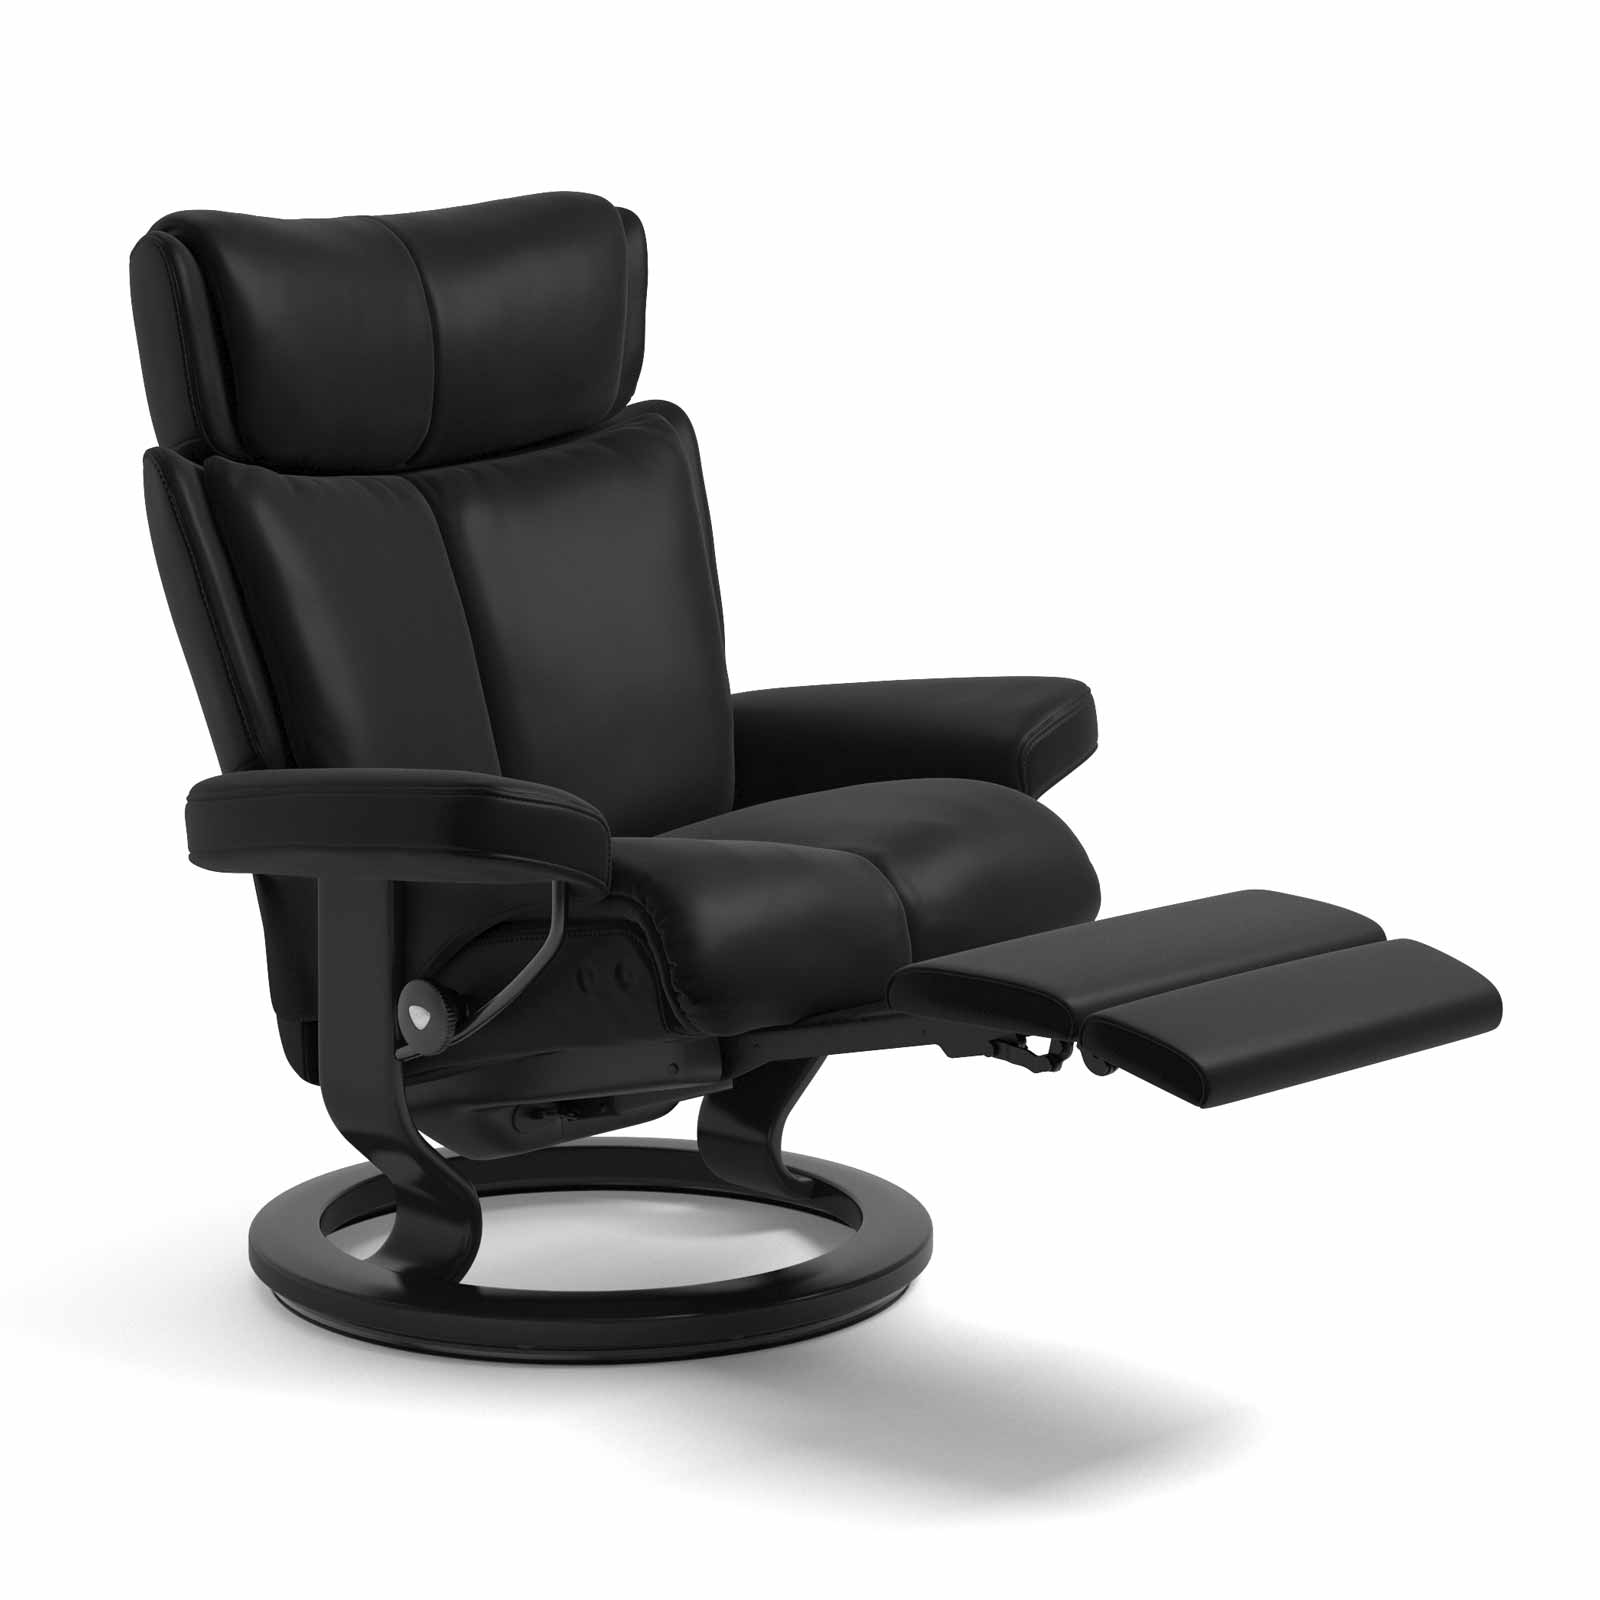 Sessel Leder Schwarz Stressless Sessel Magic Legcomfort Leder Batick Schwarz